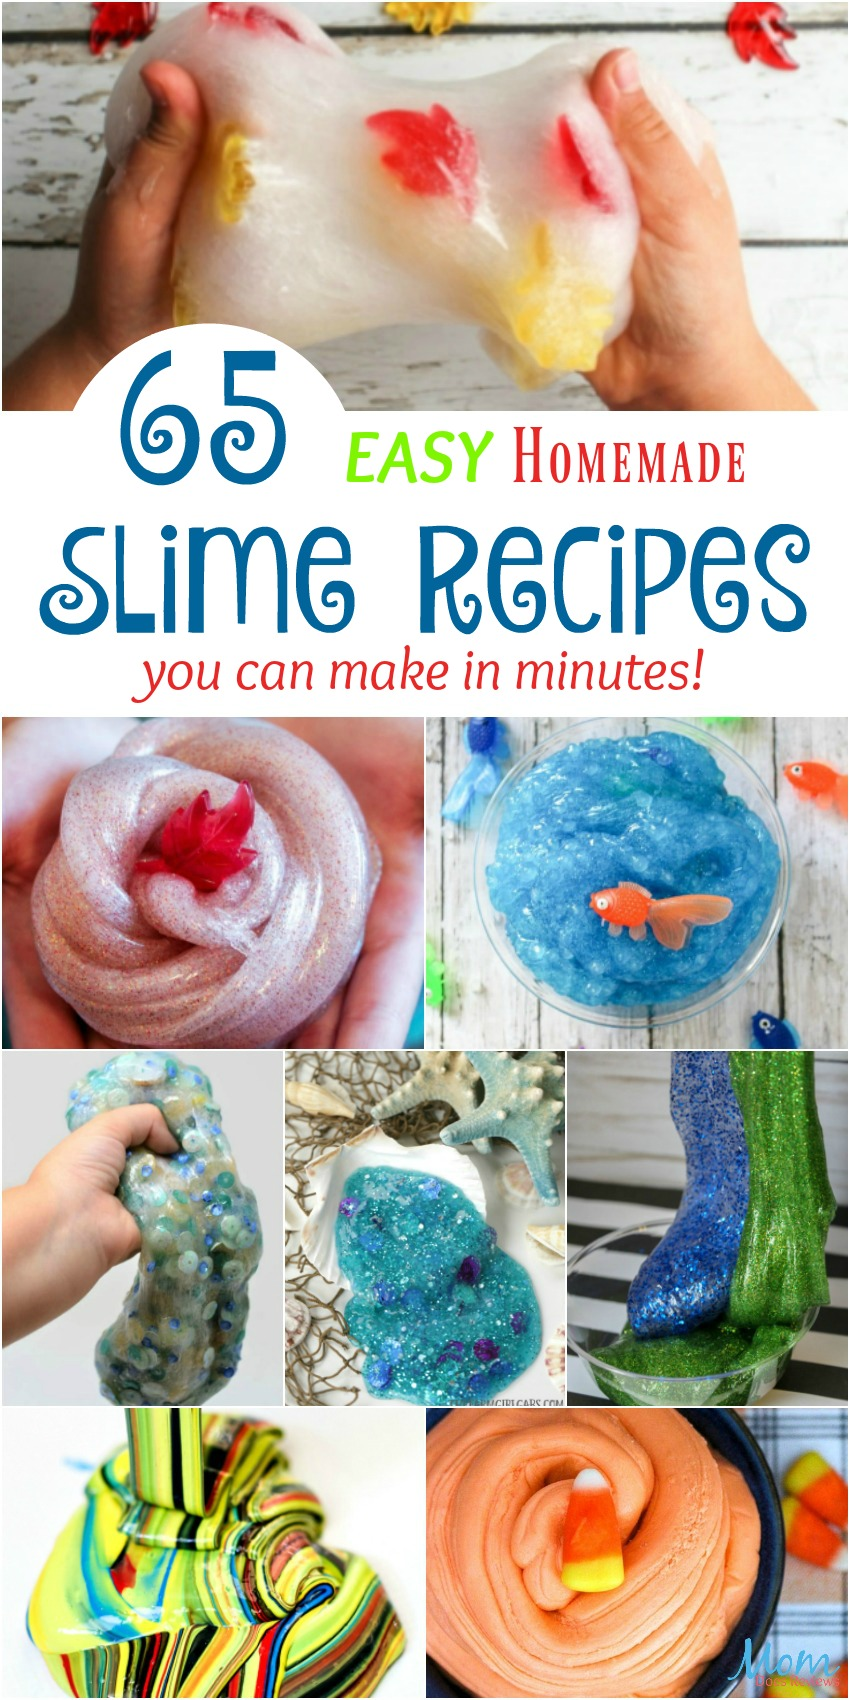 65 Easy Homemade Slime Recipes You Can Make in Minutes